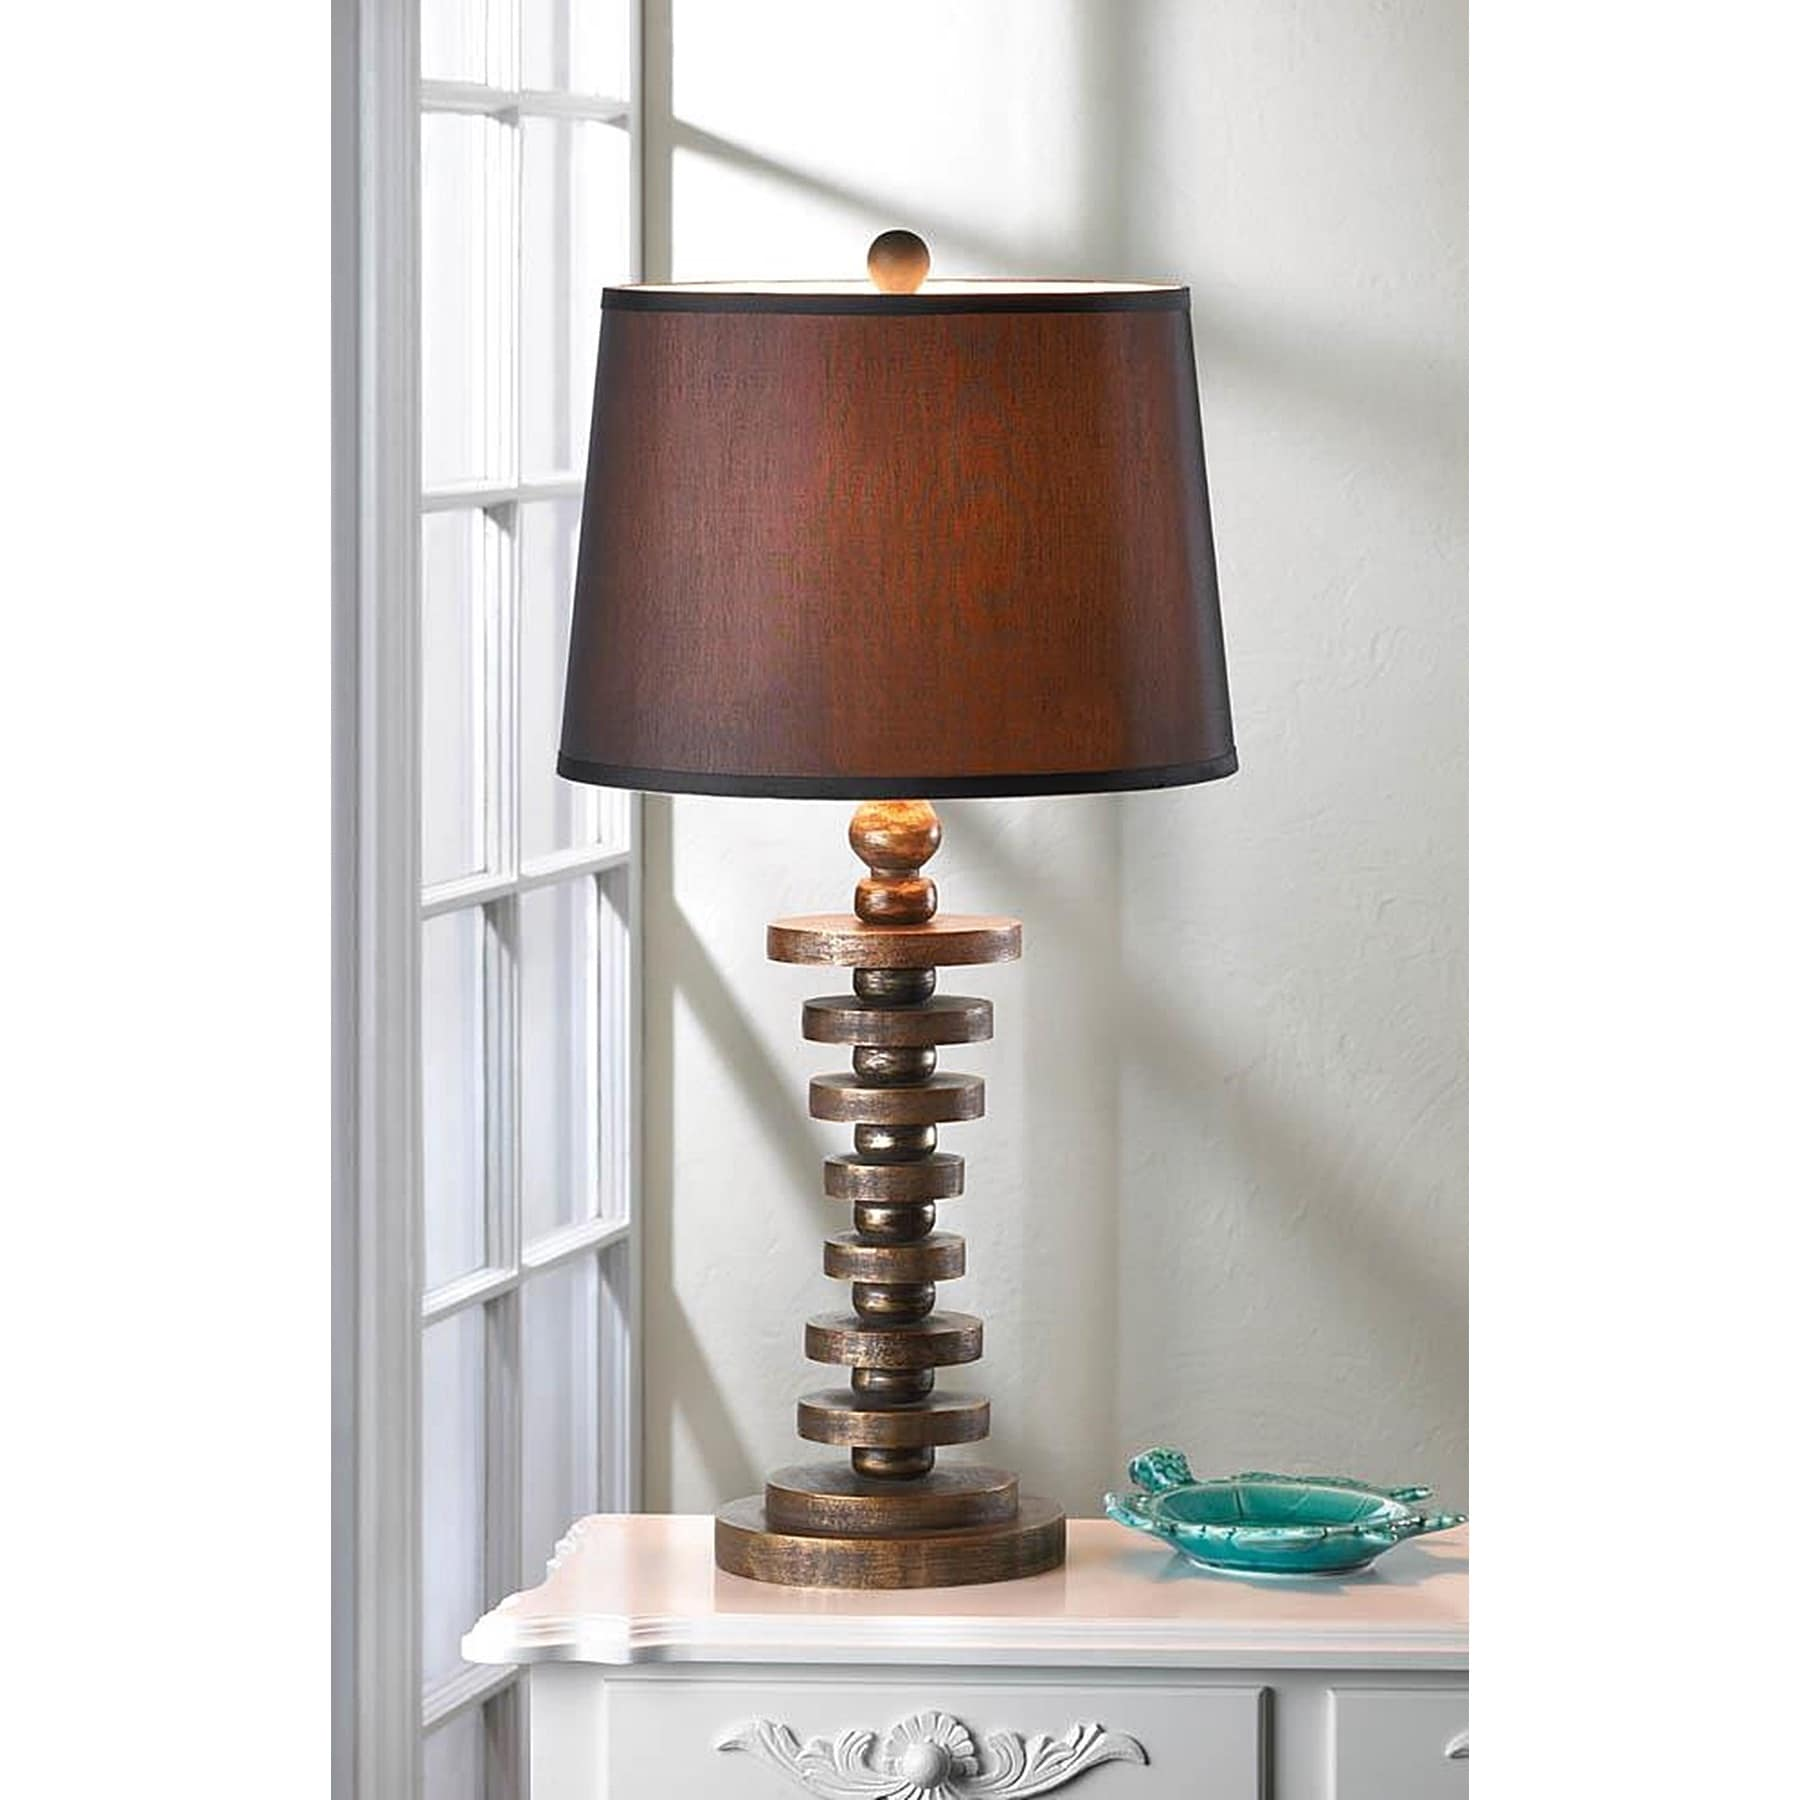 Bedford Modern Table Lamp, Brown (Fabric)